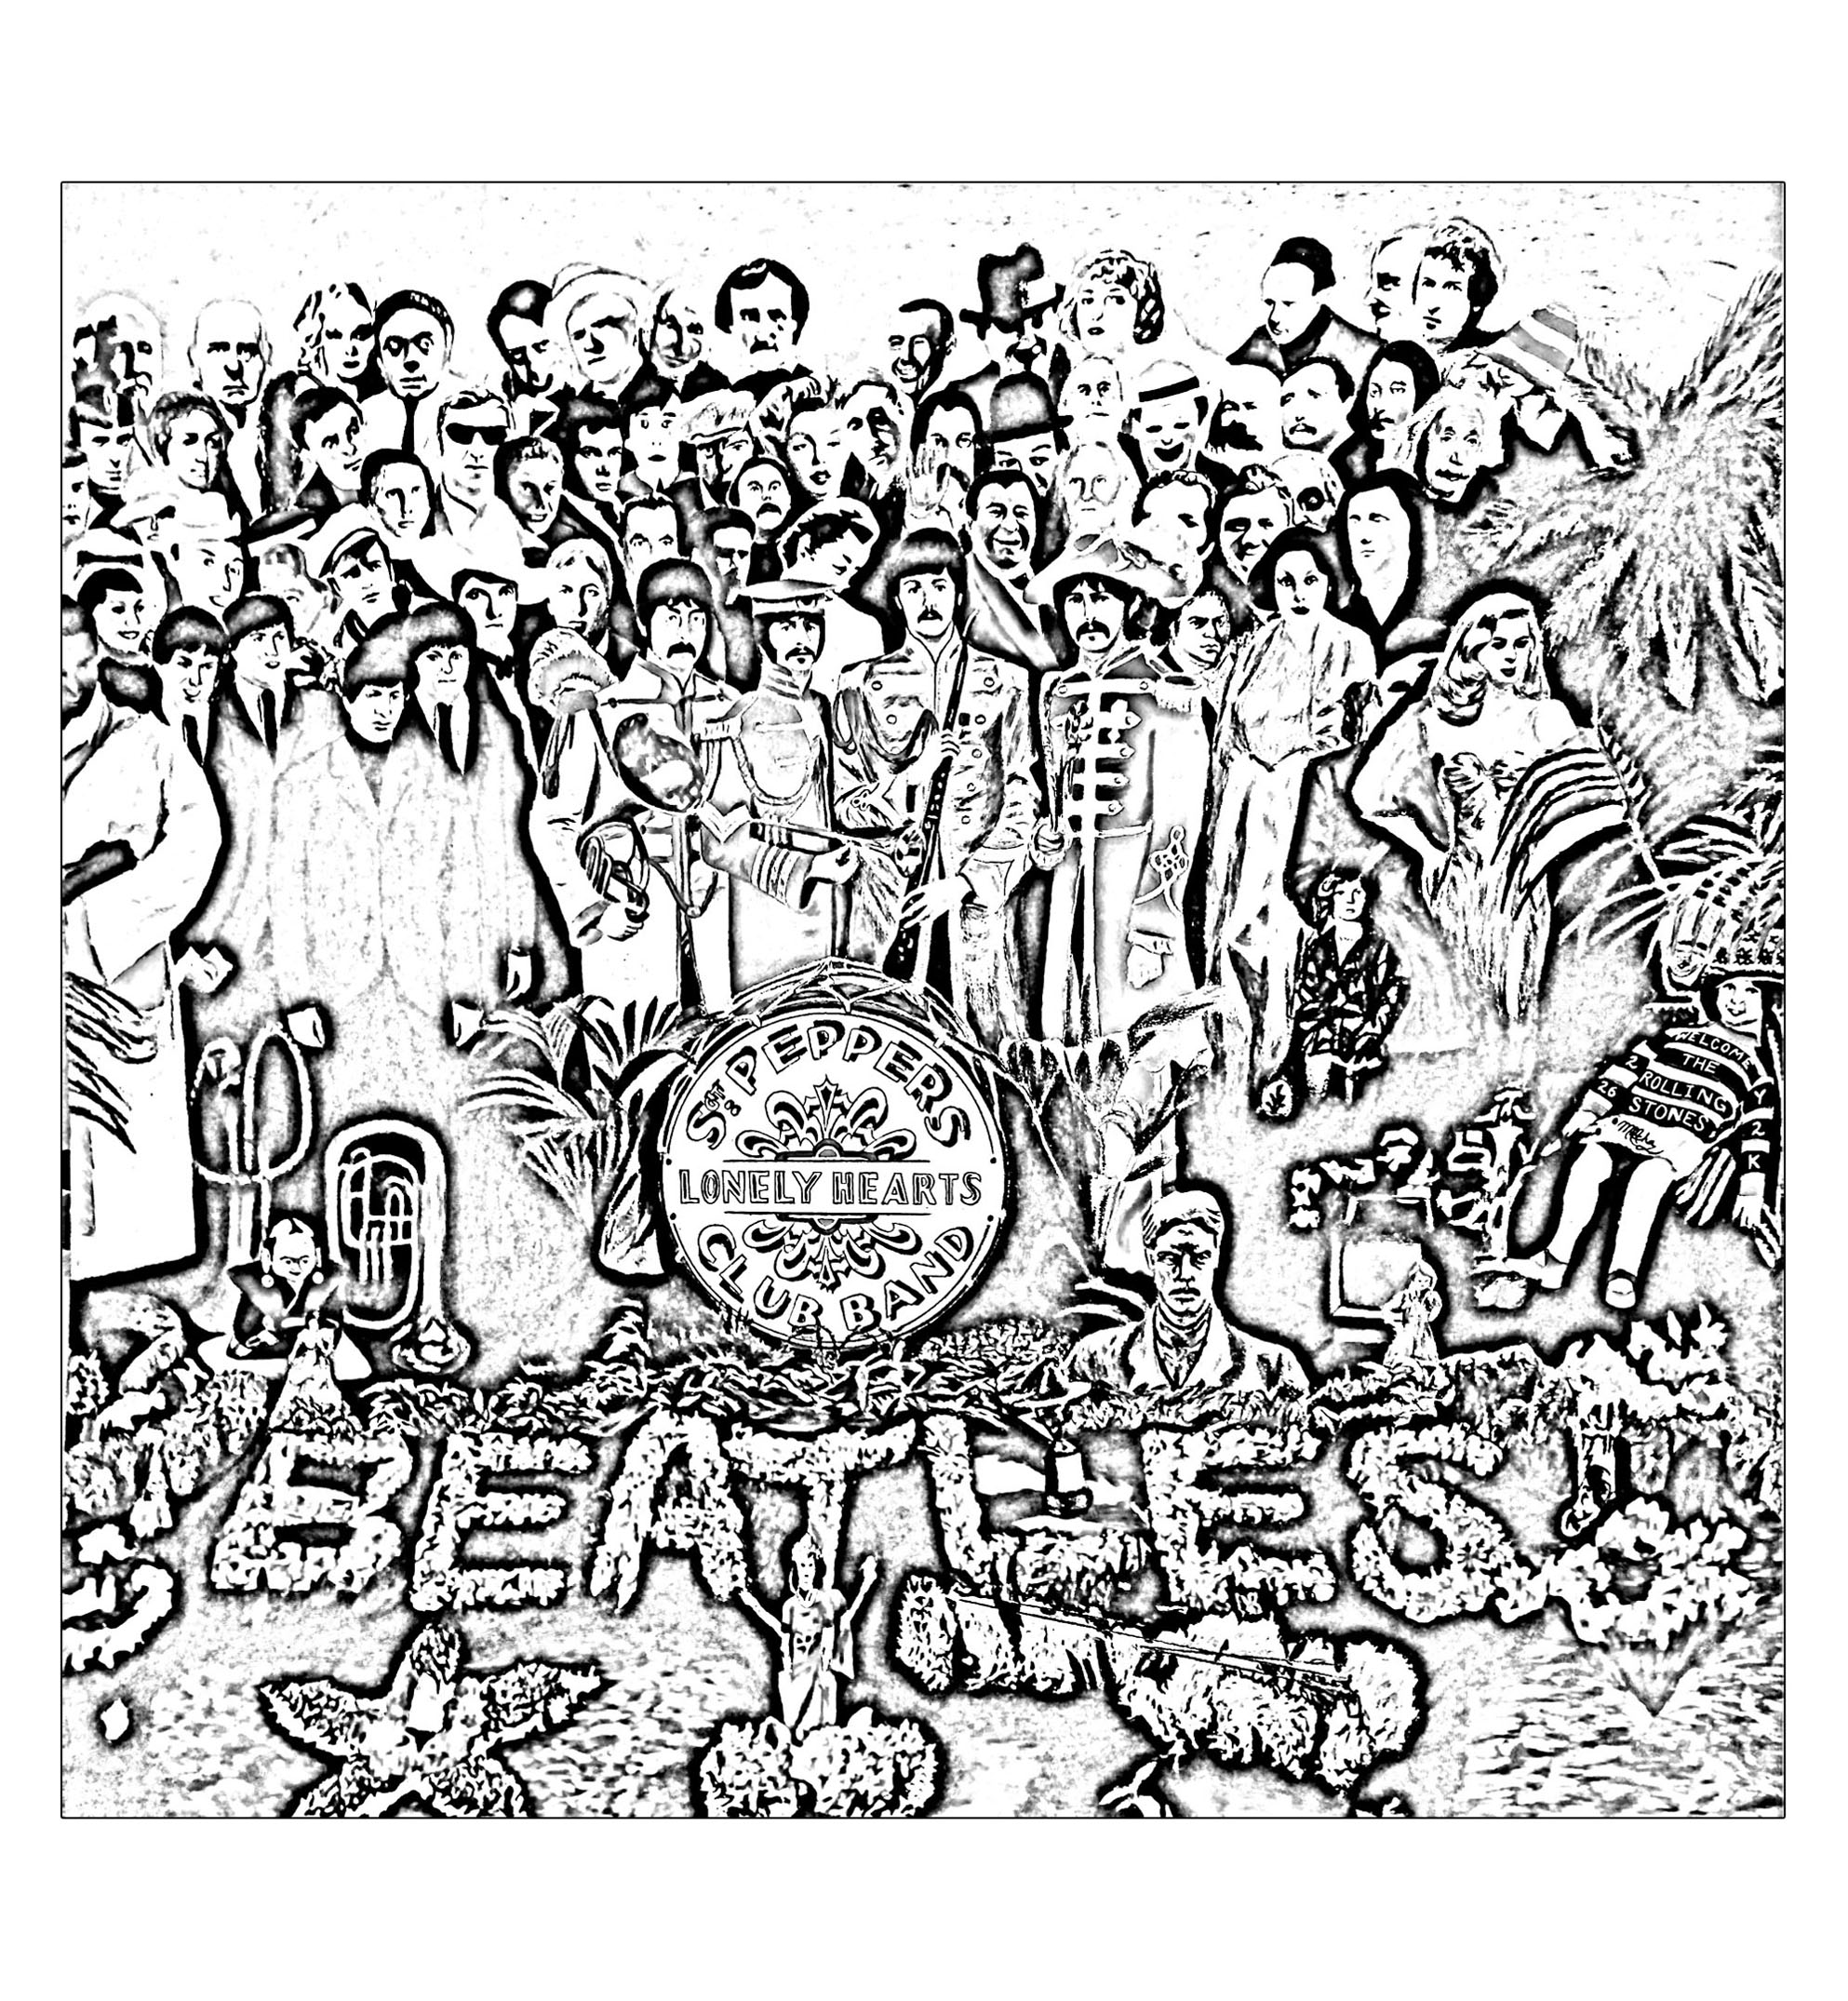 1986x2150 The Beatles Sgt Peppers Lonely Hearts Club Band